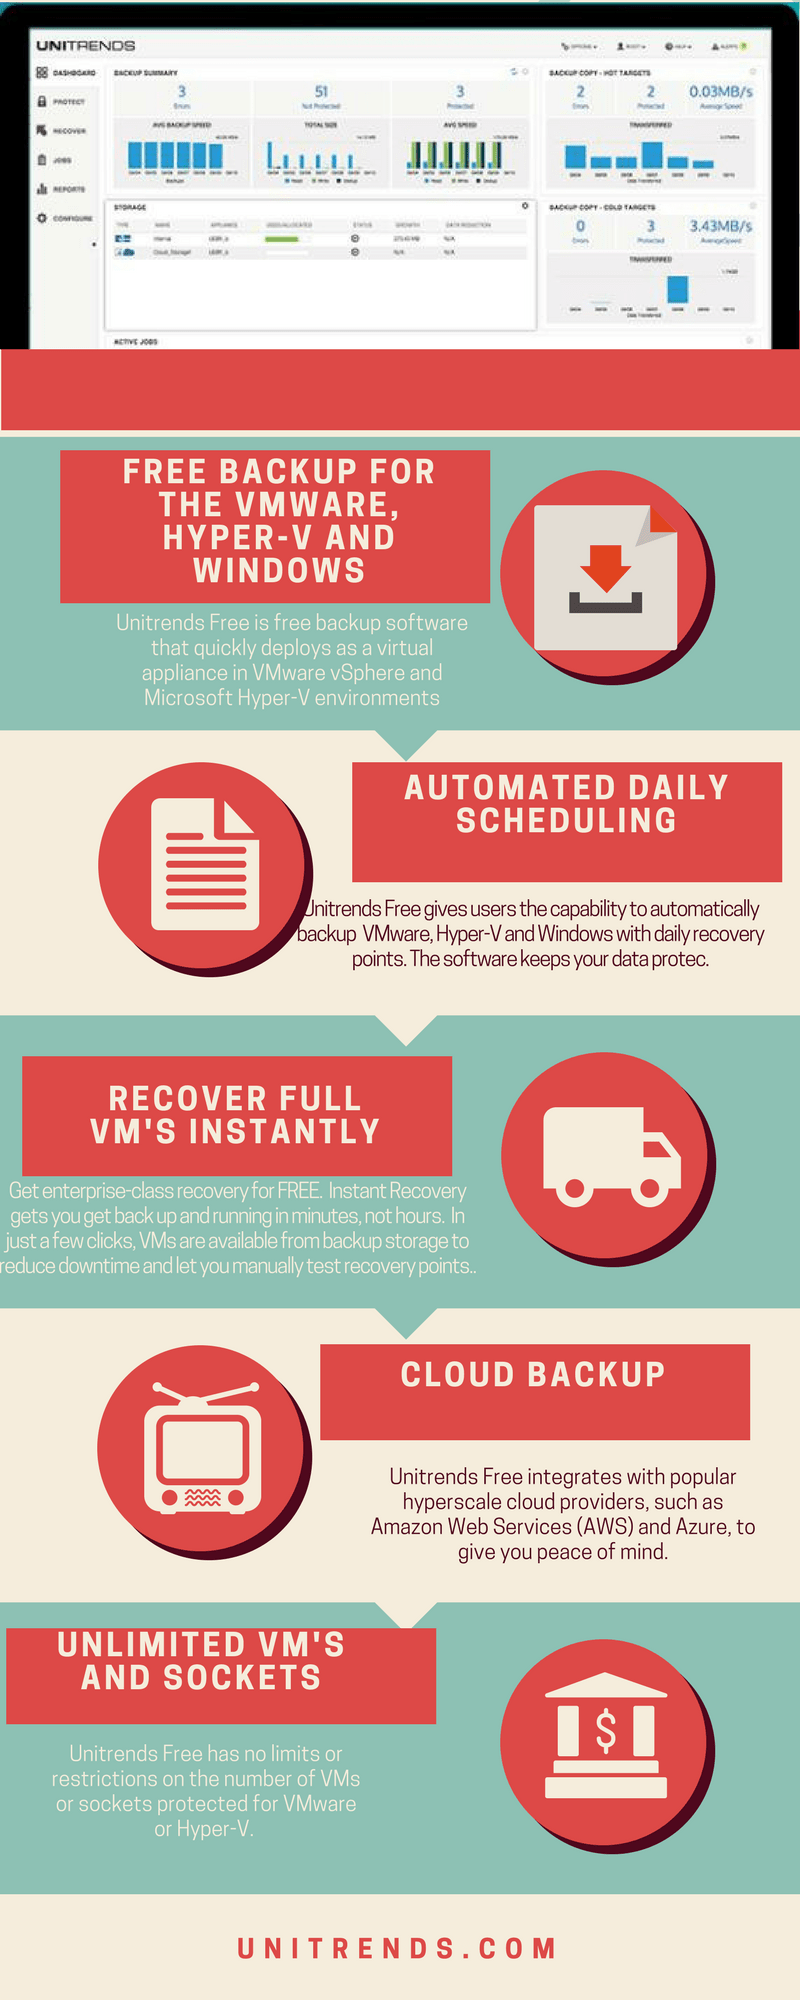 Top 5 Best Free Backup software for VMware and HyperV Infrastructure